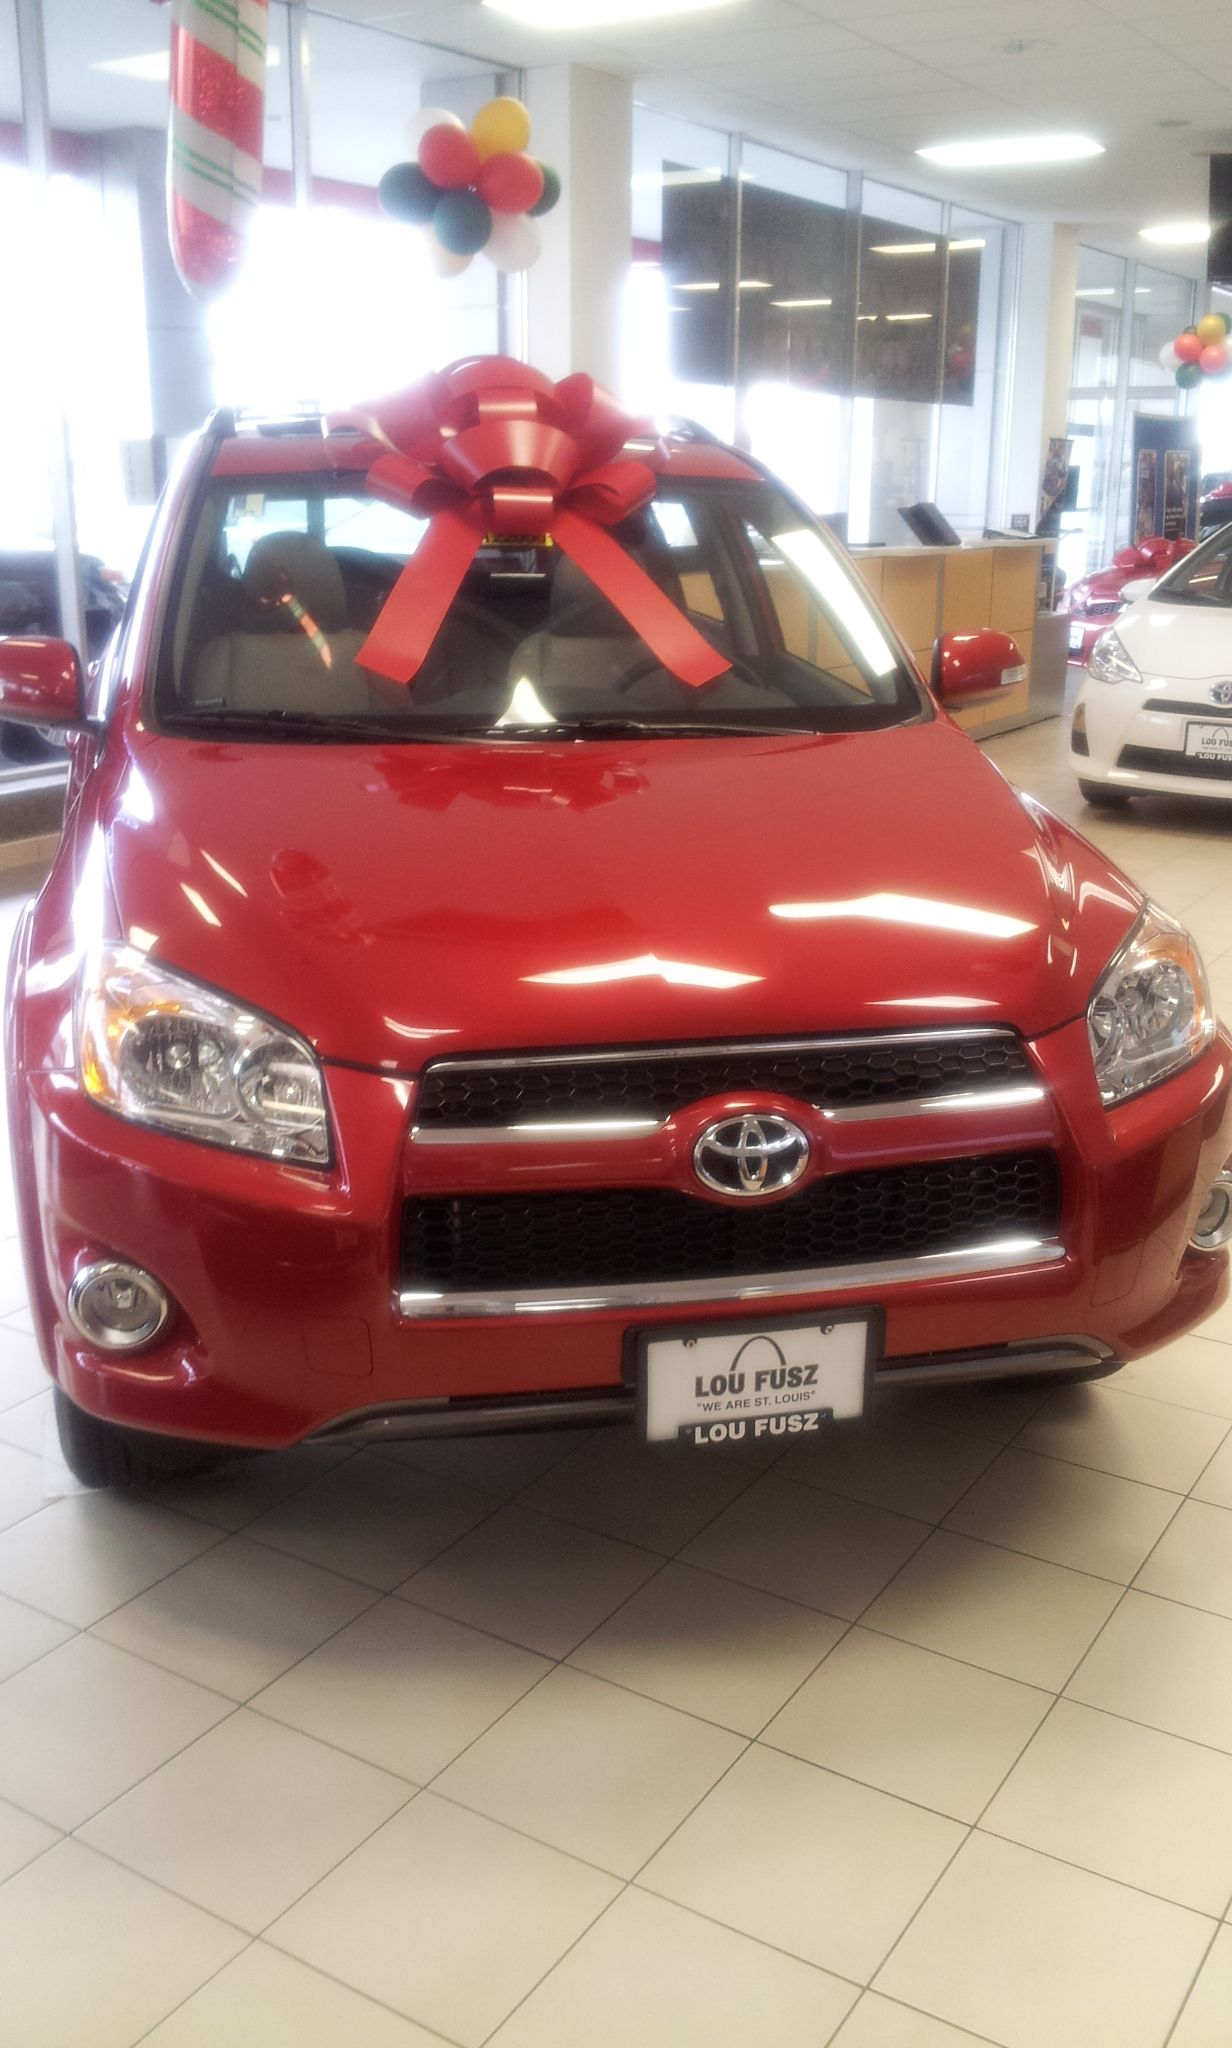 Becuase everyone loves a giant holiday bow when they get a new car taken from